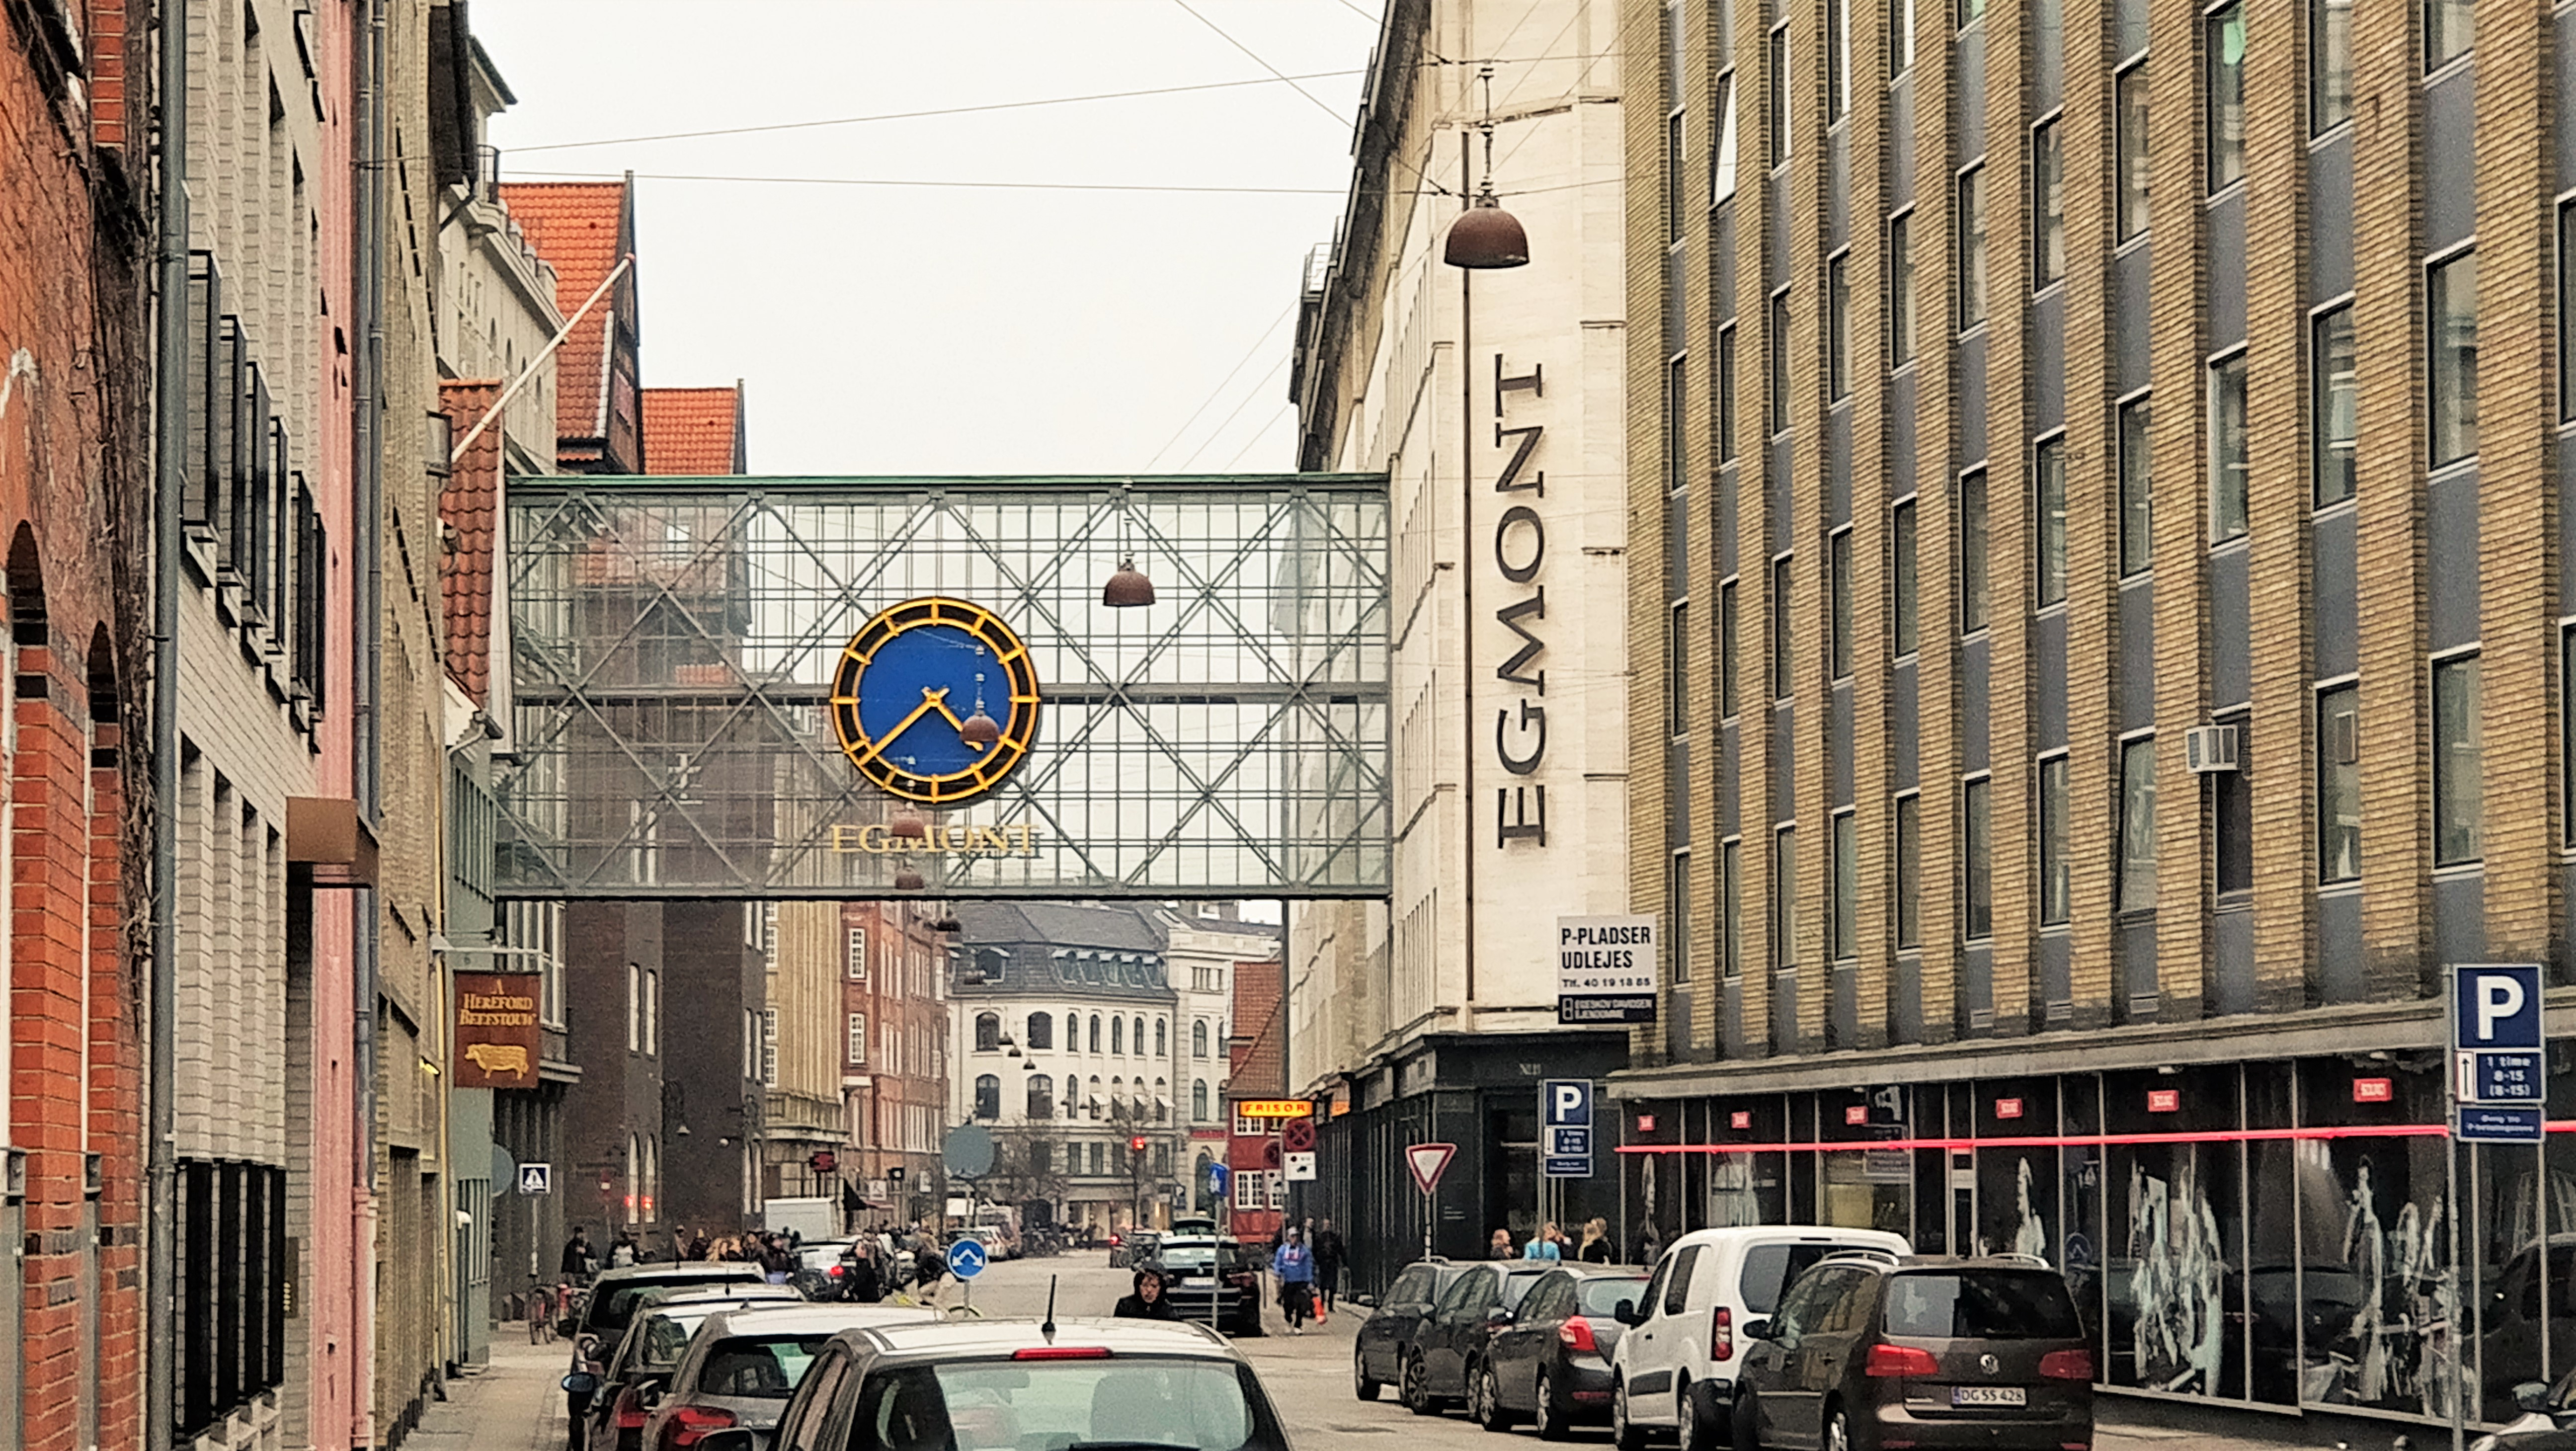 A picture of the Egmont building where the publishing house Carlsen is located